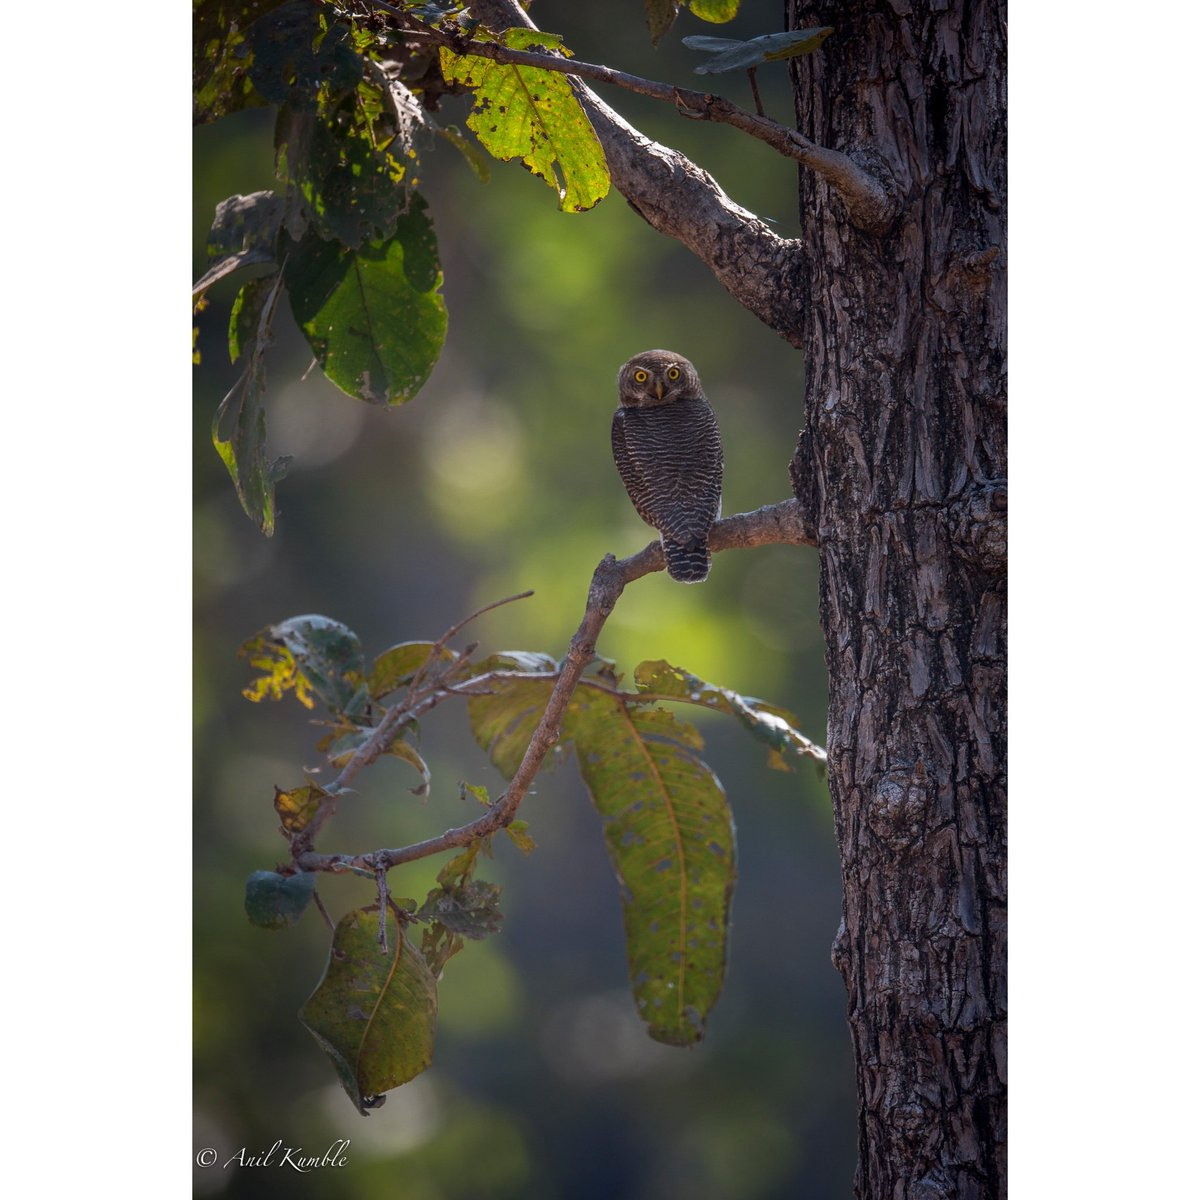 Can't hide behind my back. Snapped the Jungle Owlet  in #Kabini. #WildlifeWednesday @SonyAlpha #sonyalphaindia